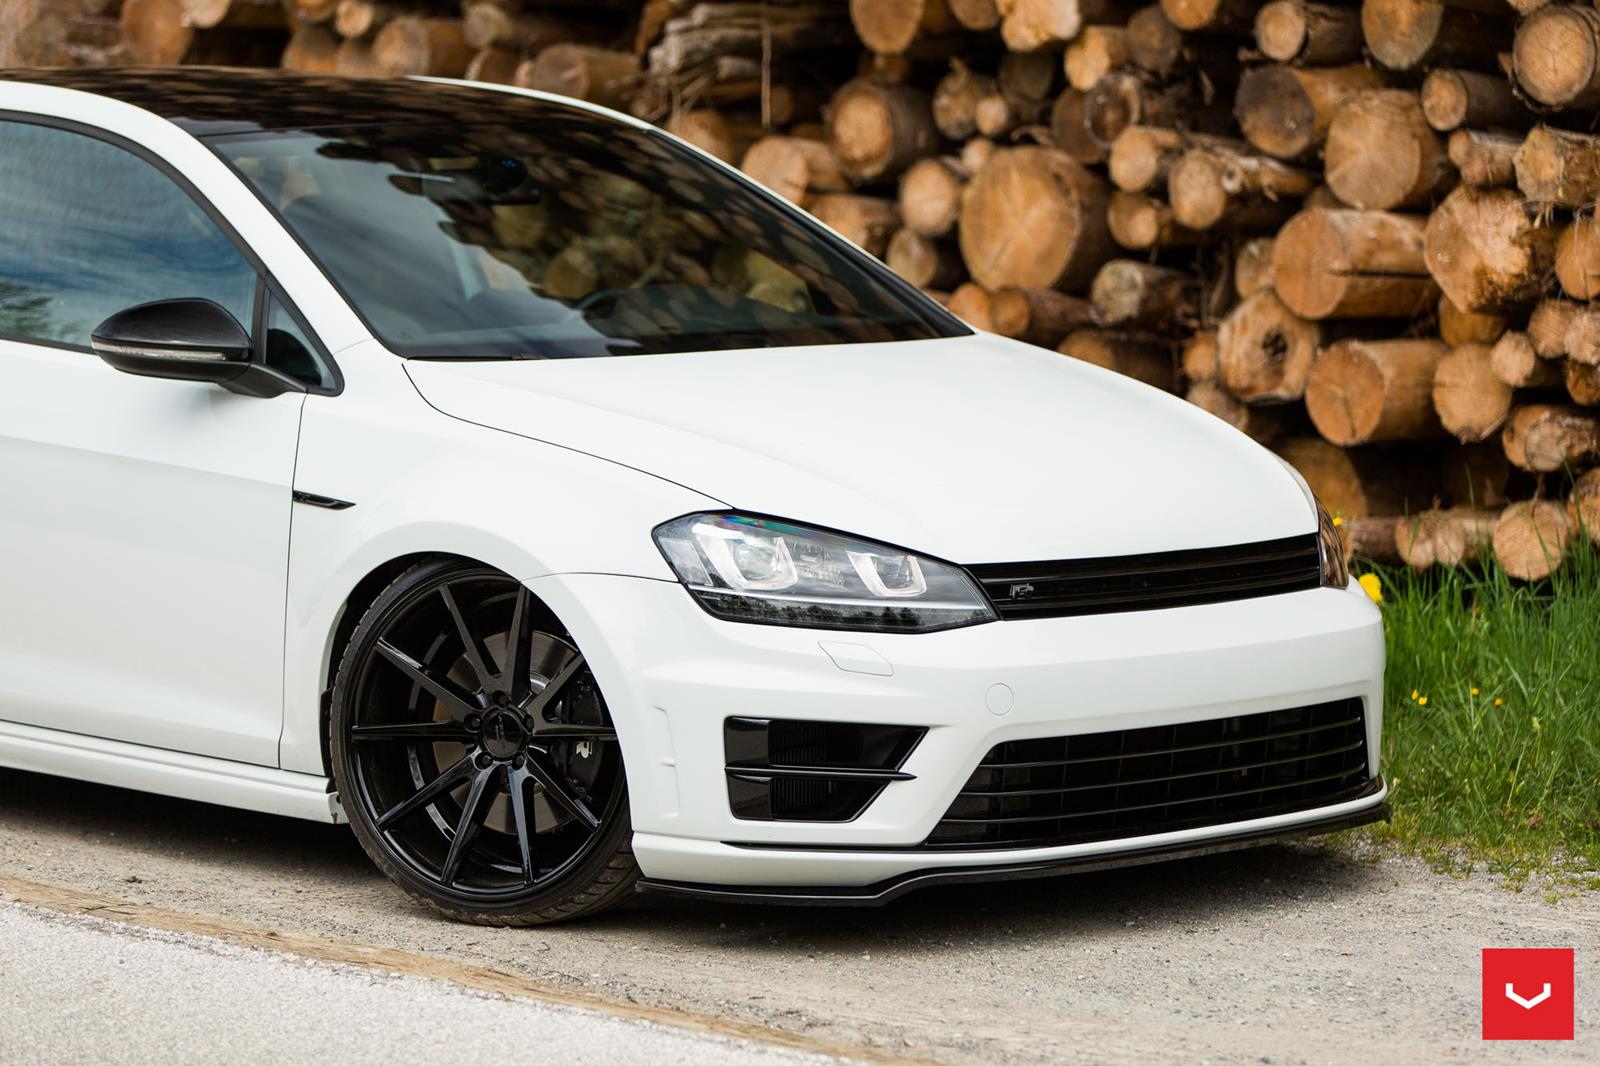 VW Golf mk7 tuning pictures - VW Tuning Mag